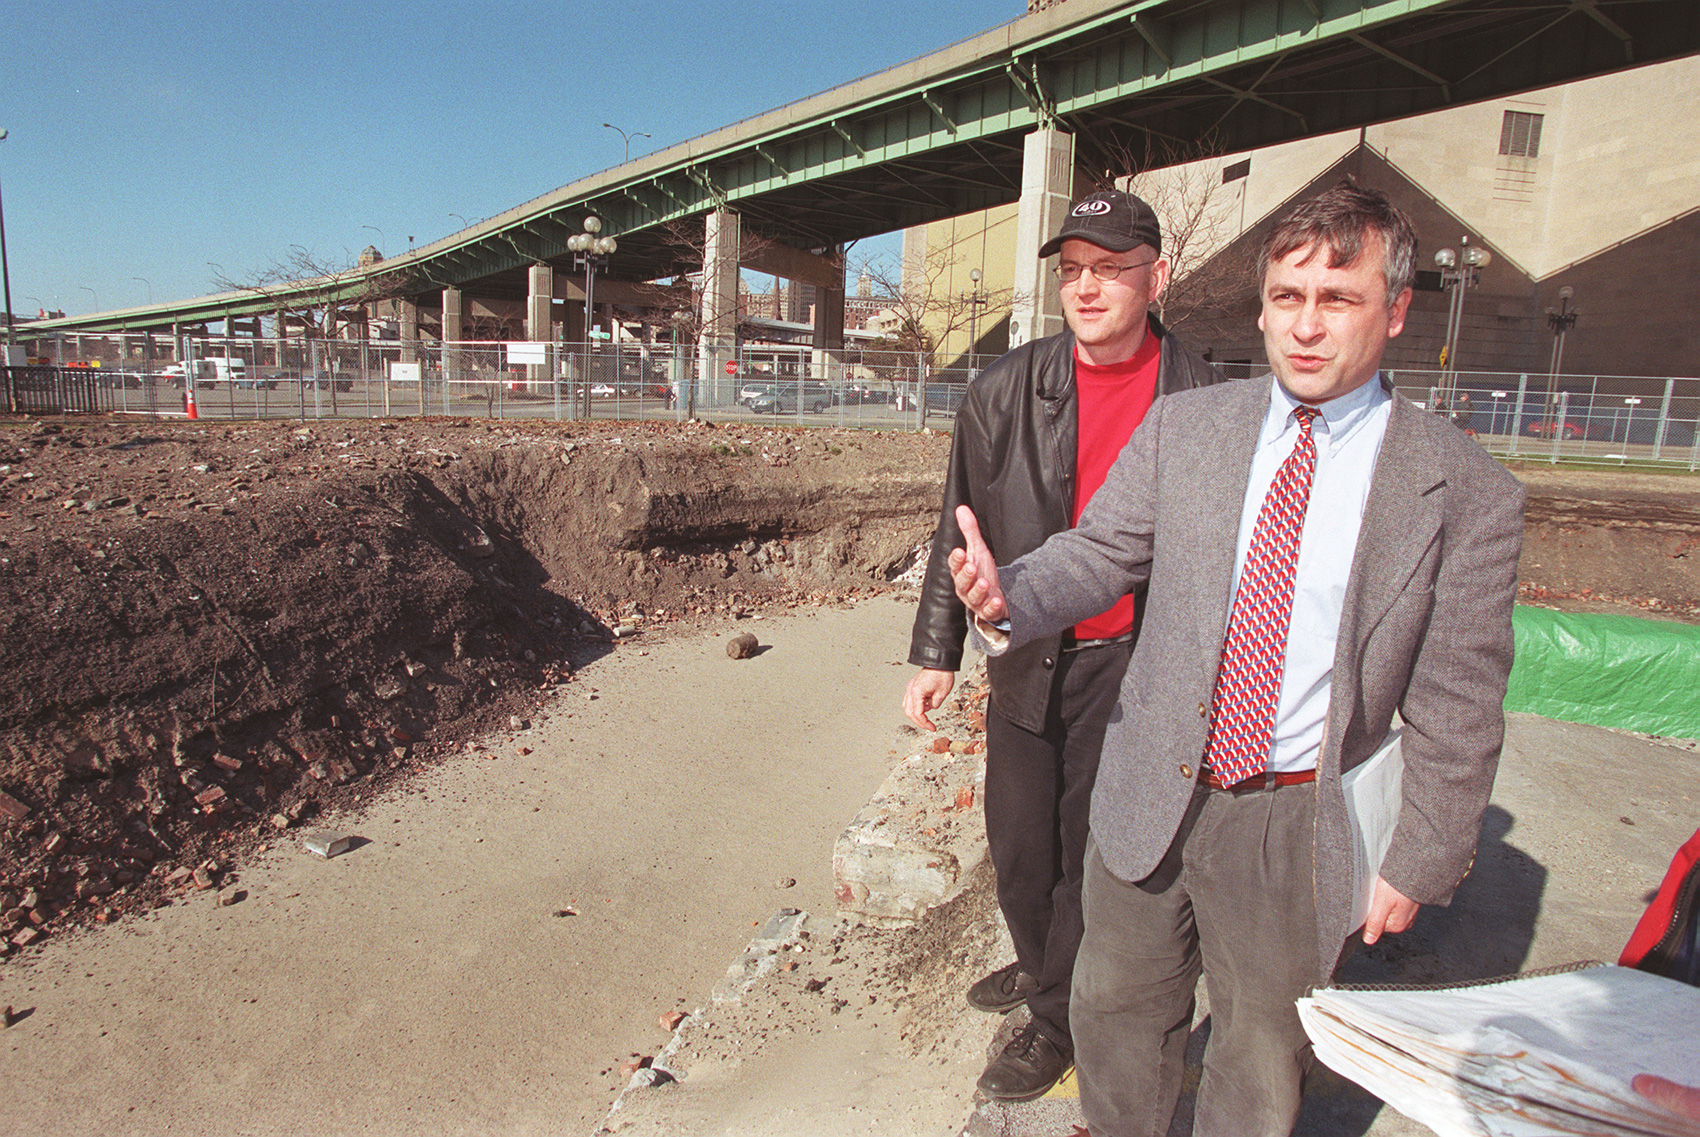 BY WIPPERT 3/31/00 ERIE COUNTY PRESERVATION COALITION EXECUTIVE DIRECTOR TIM TIELMAN, RIGHT, AND BOARD MEMBER SCOT FISHER (CQ) LOOK OVER THE CANAL SLIP FRIDAY FOLLOWING THE JUDGE'S RULING. ERIE CANAL HISTORIC TERMINUS DEVELOPMENT